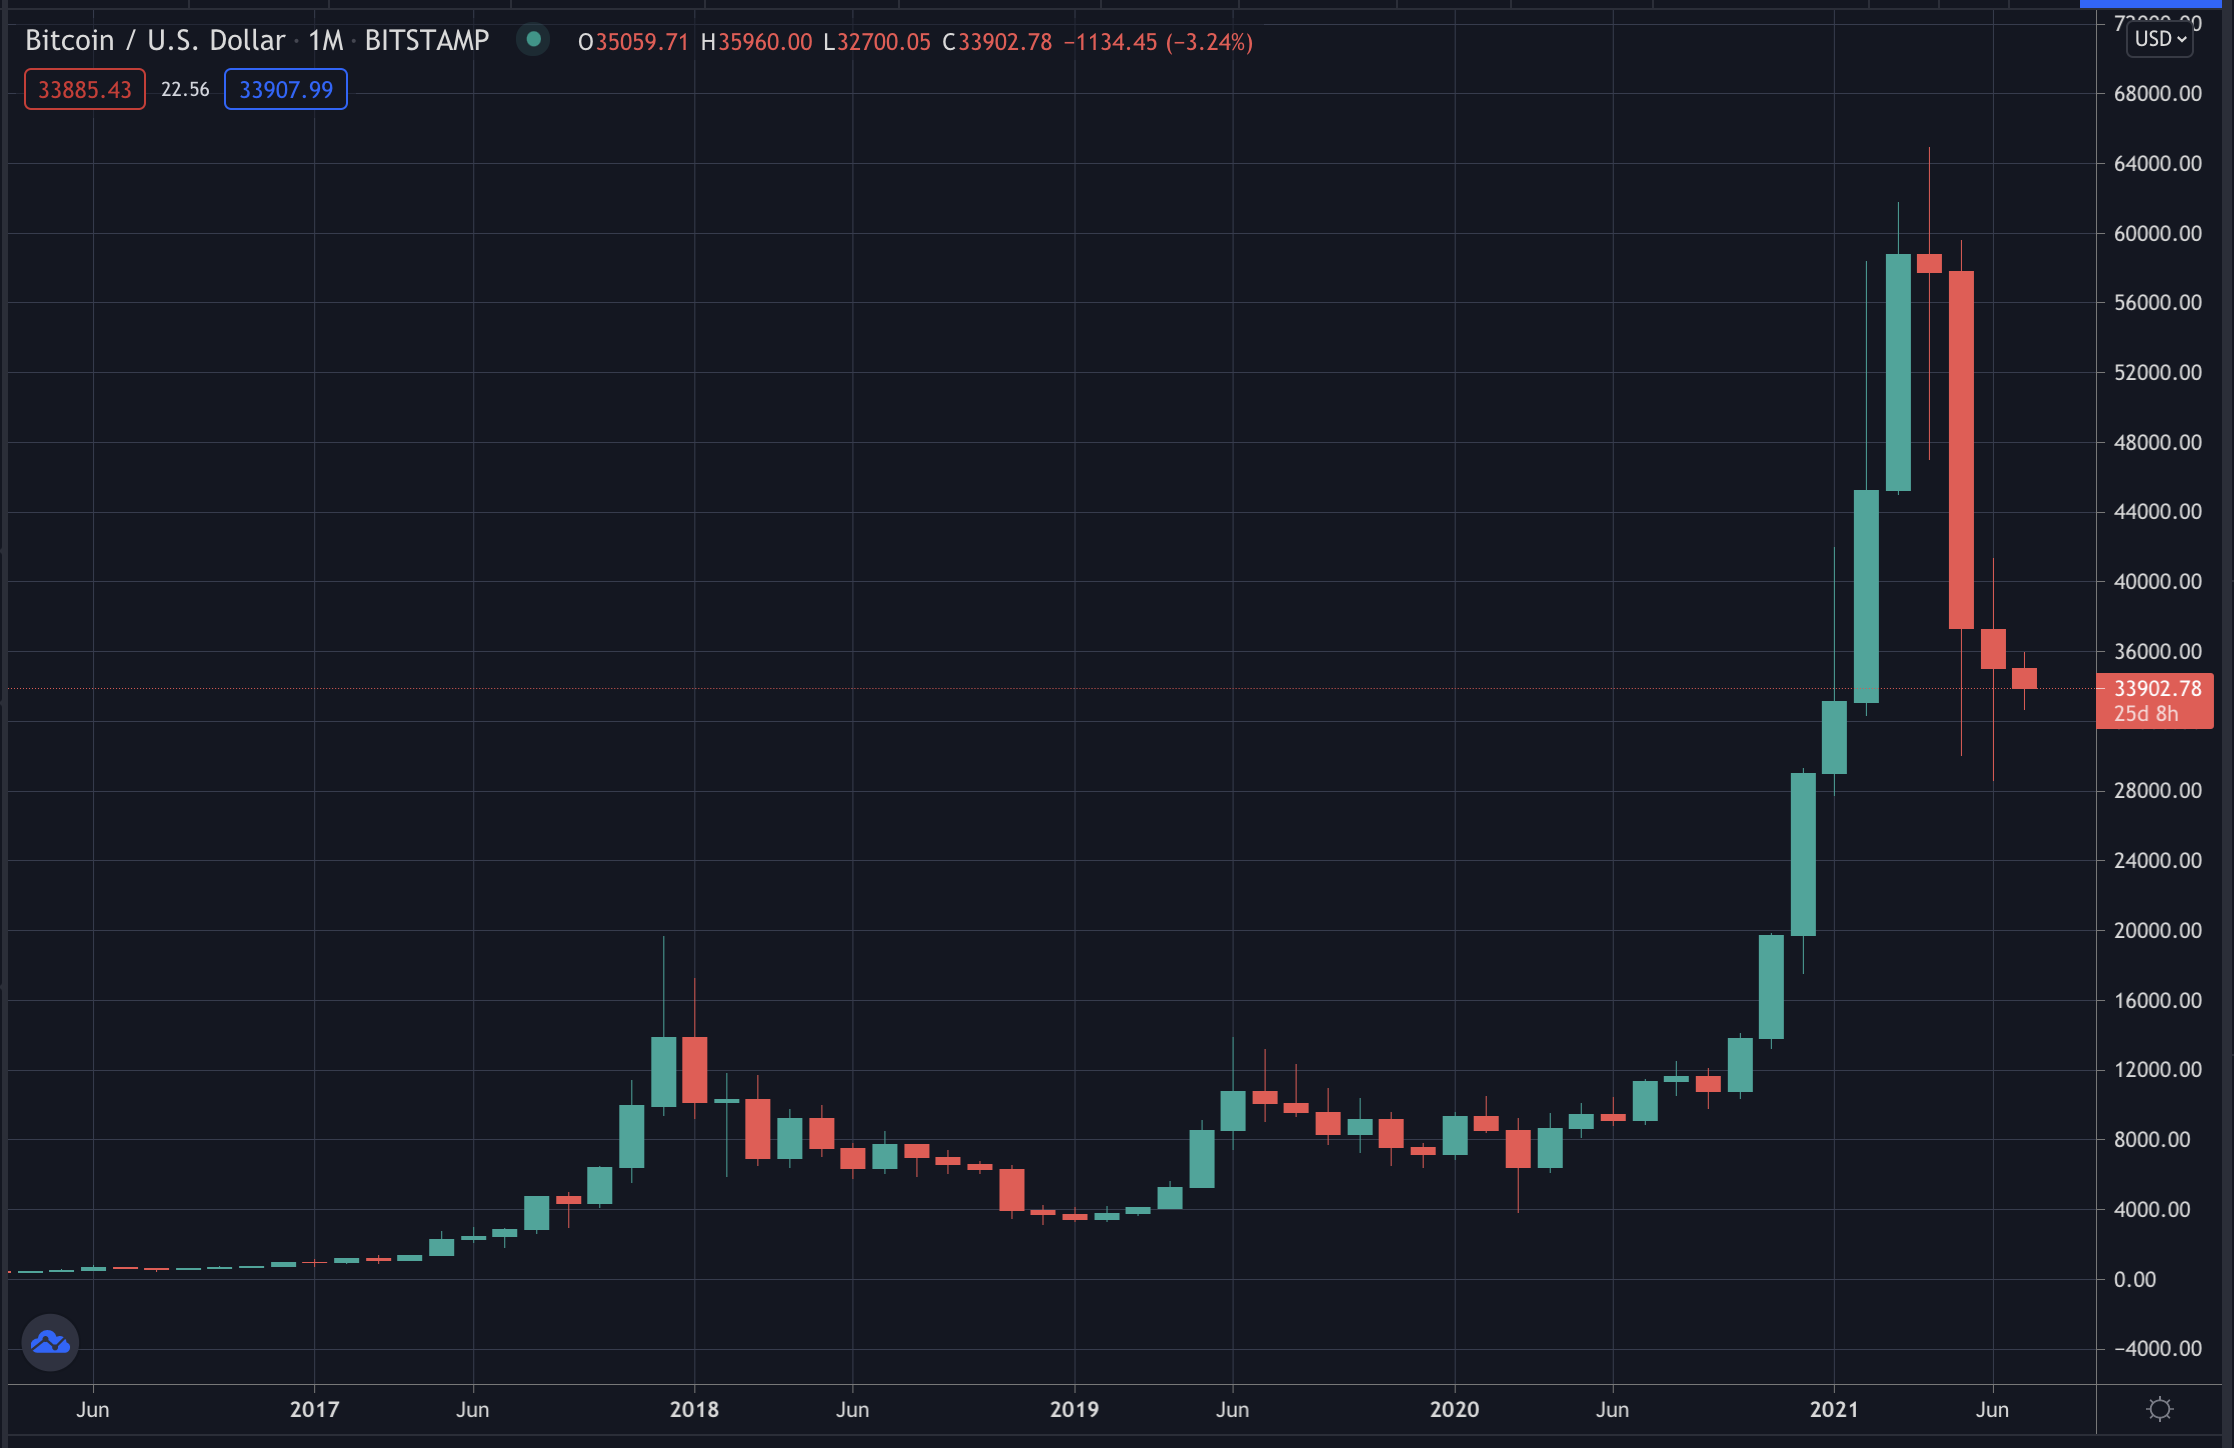 Bitcoin's price on monthly candles, July 2021